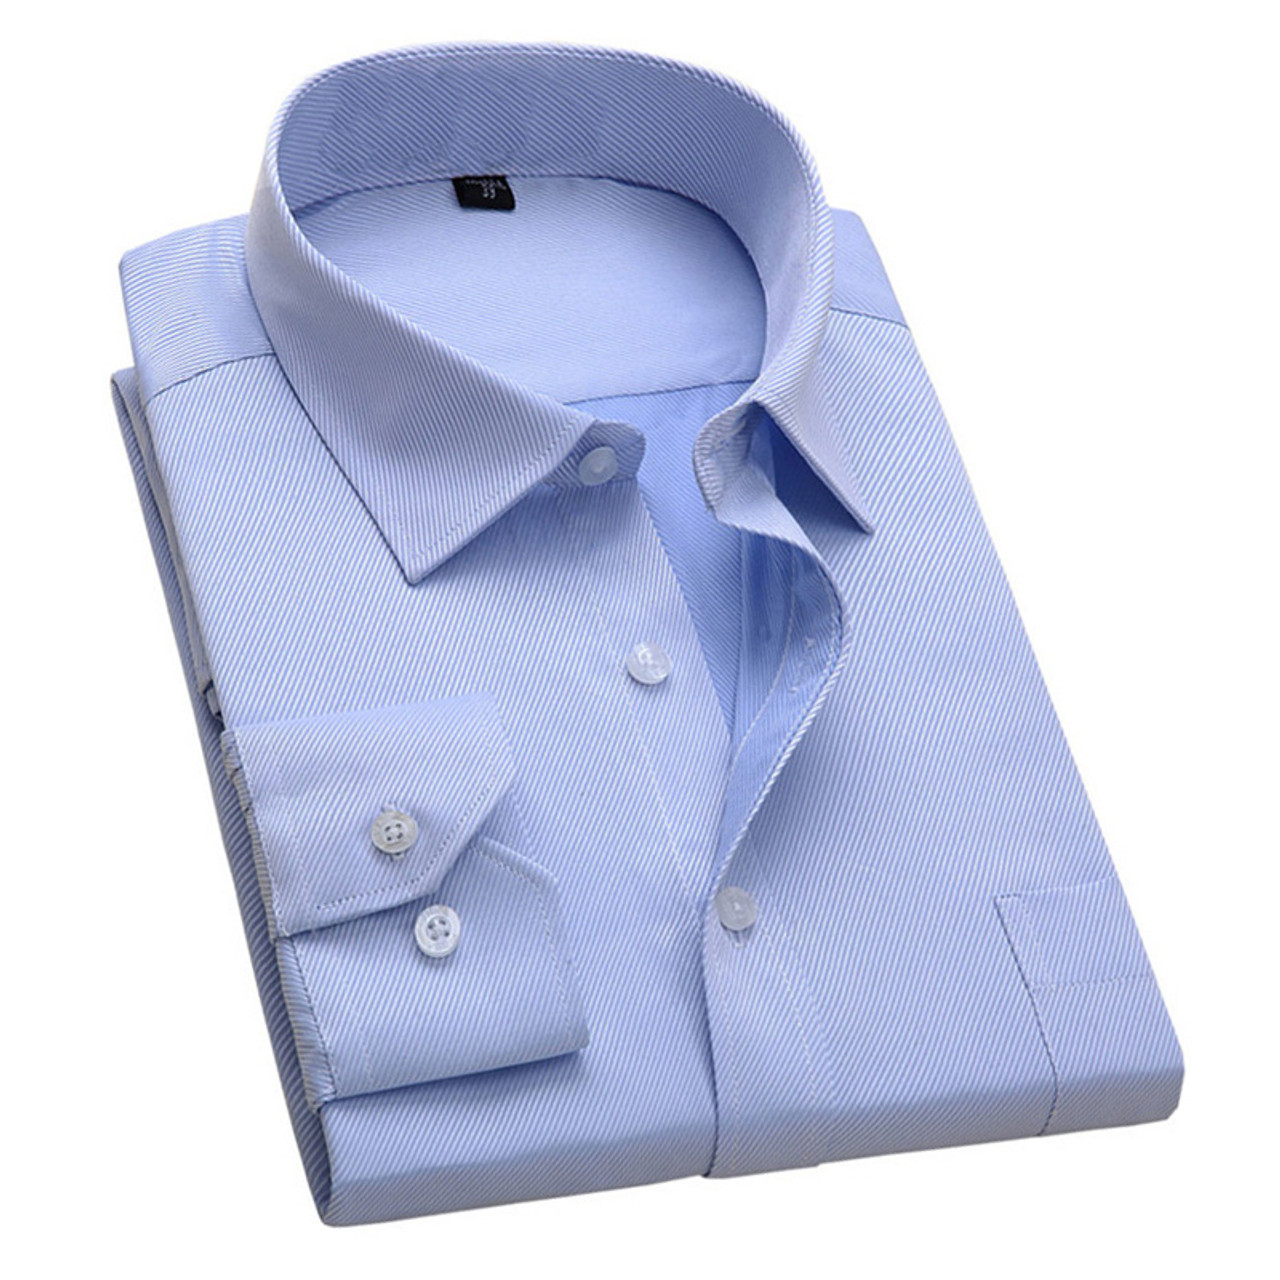 d592a9c1f00 2017 New Design Twill Cotton Pure Color White Business Formal Dress Shirts  Men Fashion Long Sleeve ...